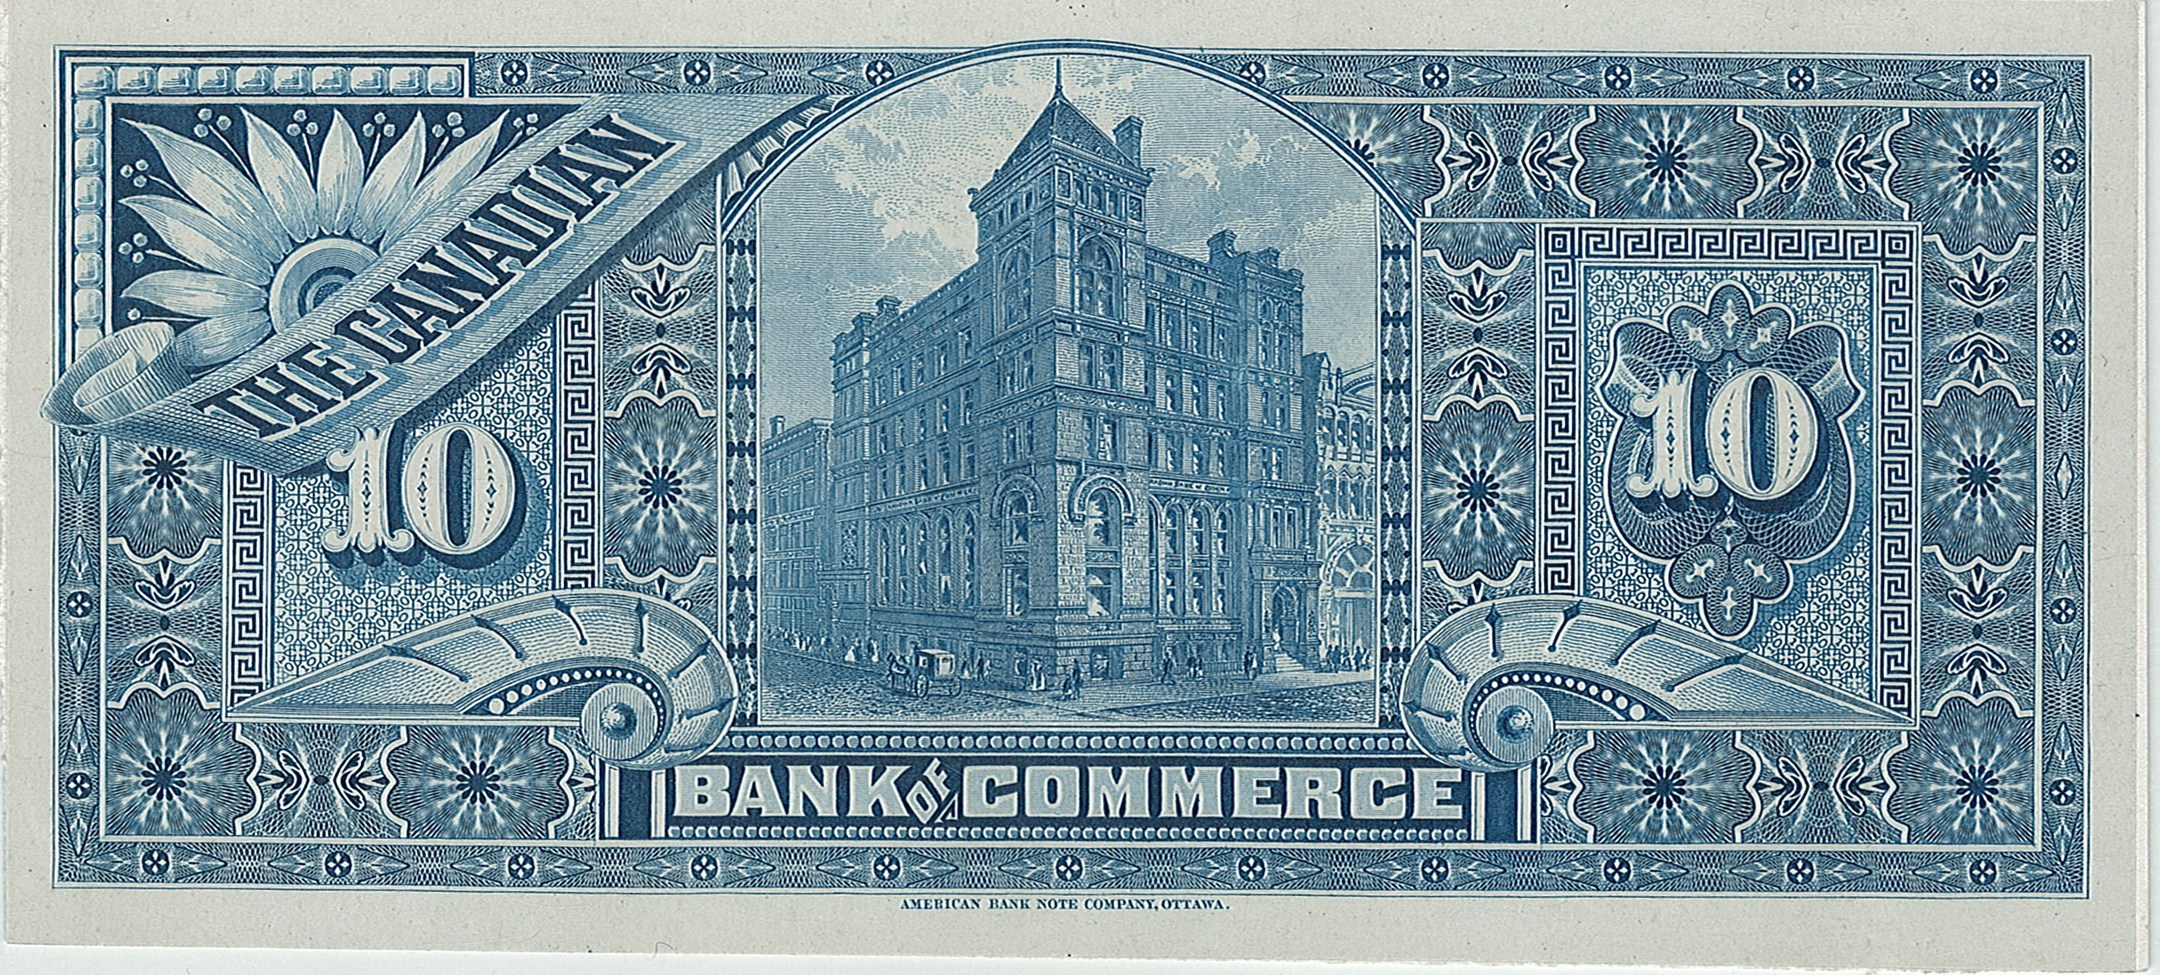 Canadian Bank of Commerce, 10$, Канада, 1888-1912 г.г.